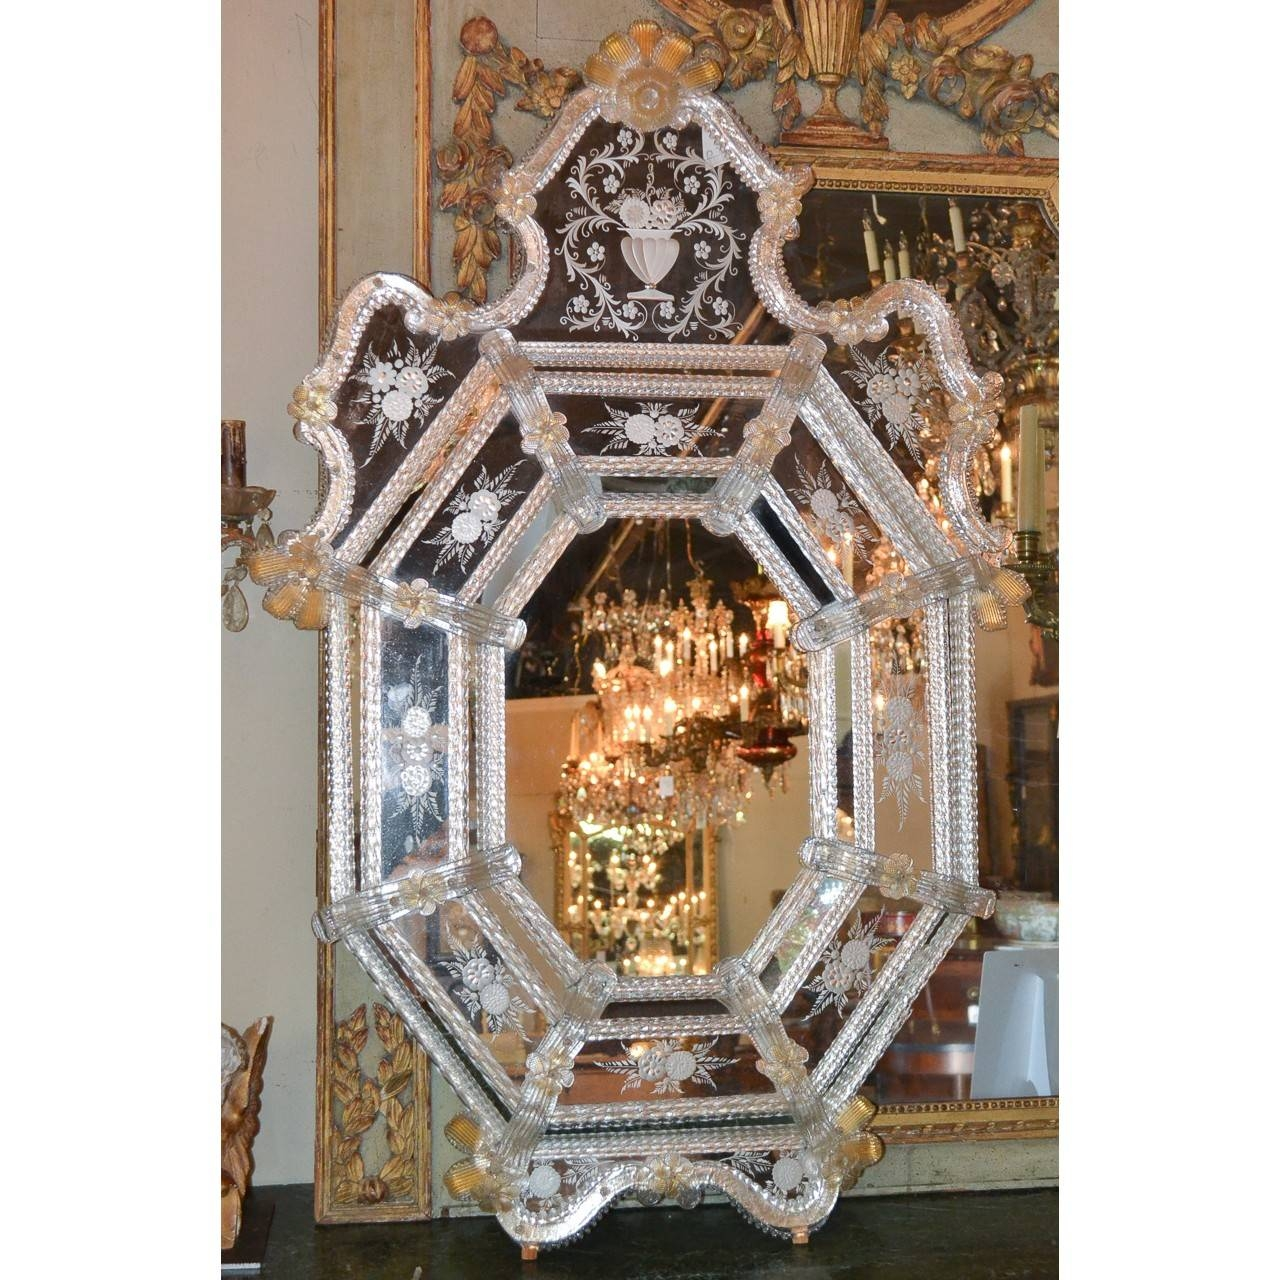 Beautiful Antique Venetian Etched Glass Mirror - Legacy Antiques inside Venetian Etched Glass Mirrors (Image 3 of 15)